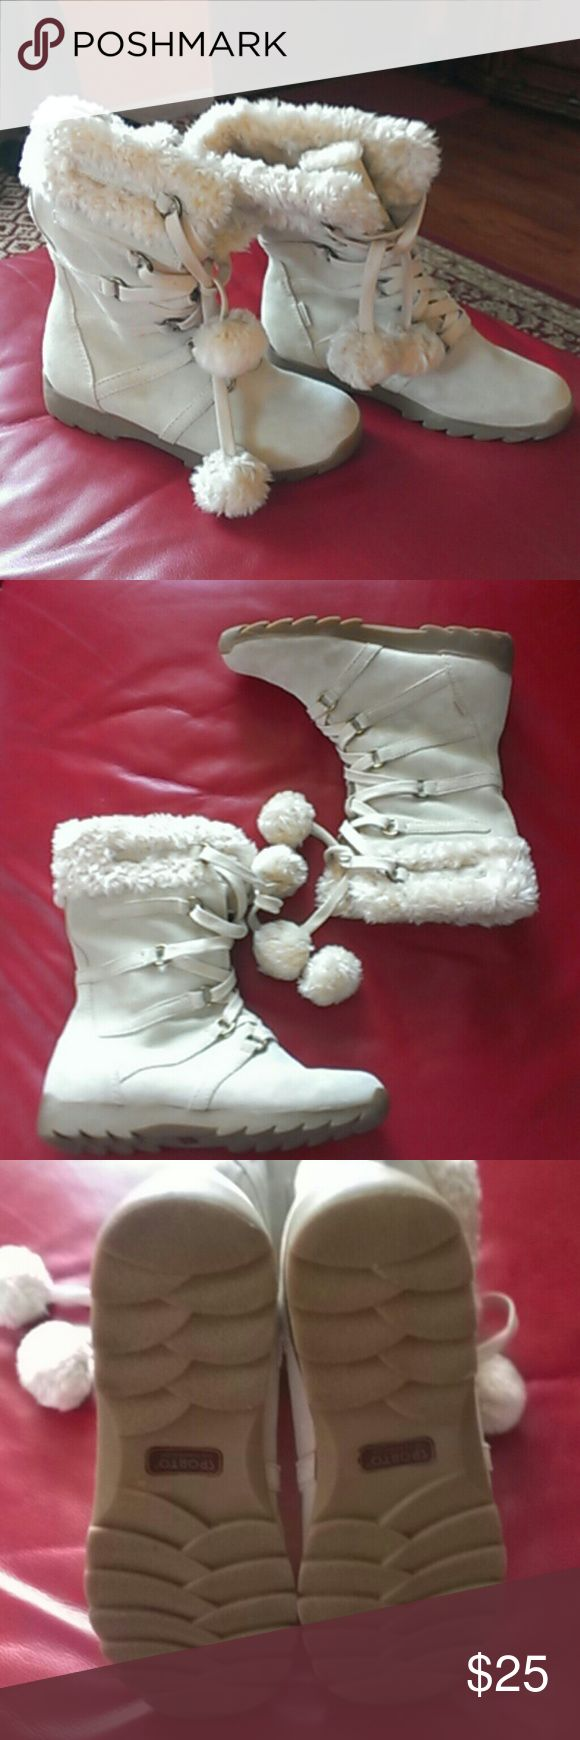 Boots Sporto Boots Sporto waterproof, leather upper, balance man made materials, color cream, like new. Sporto Shoes Winter & Rain Boots